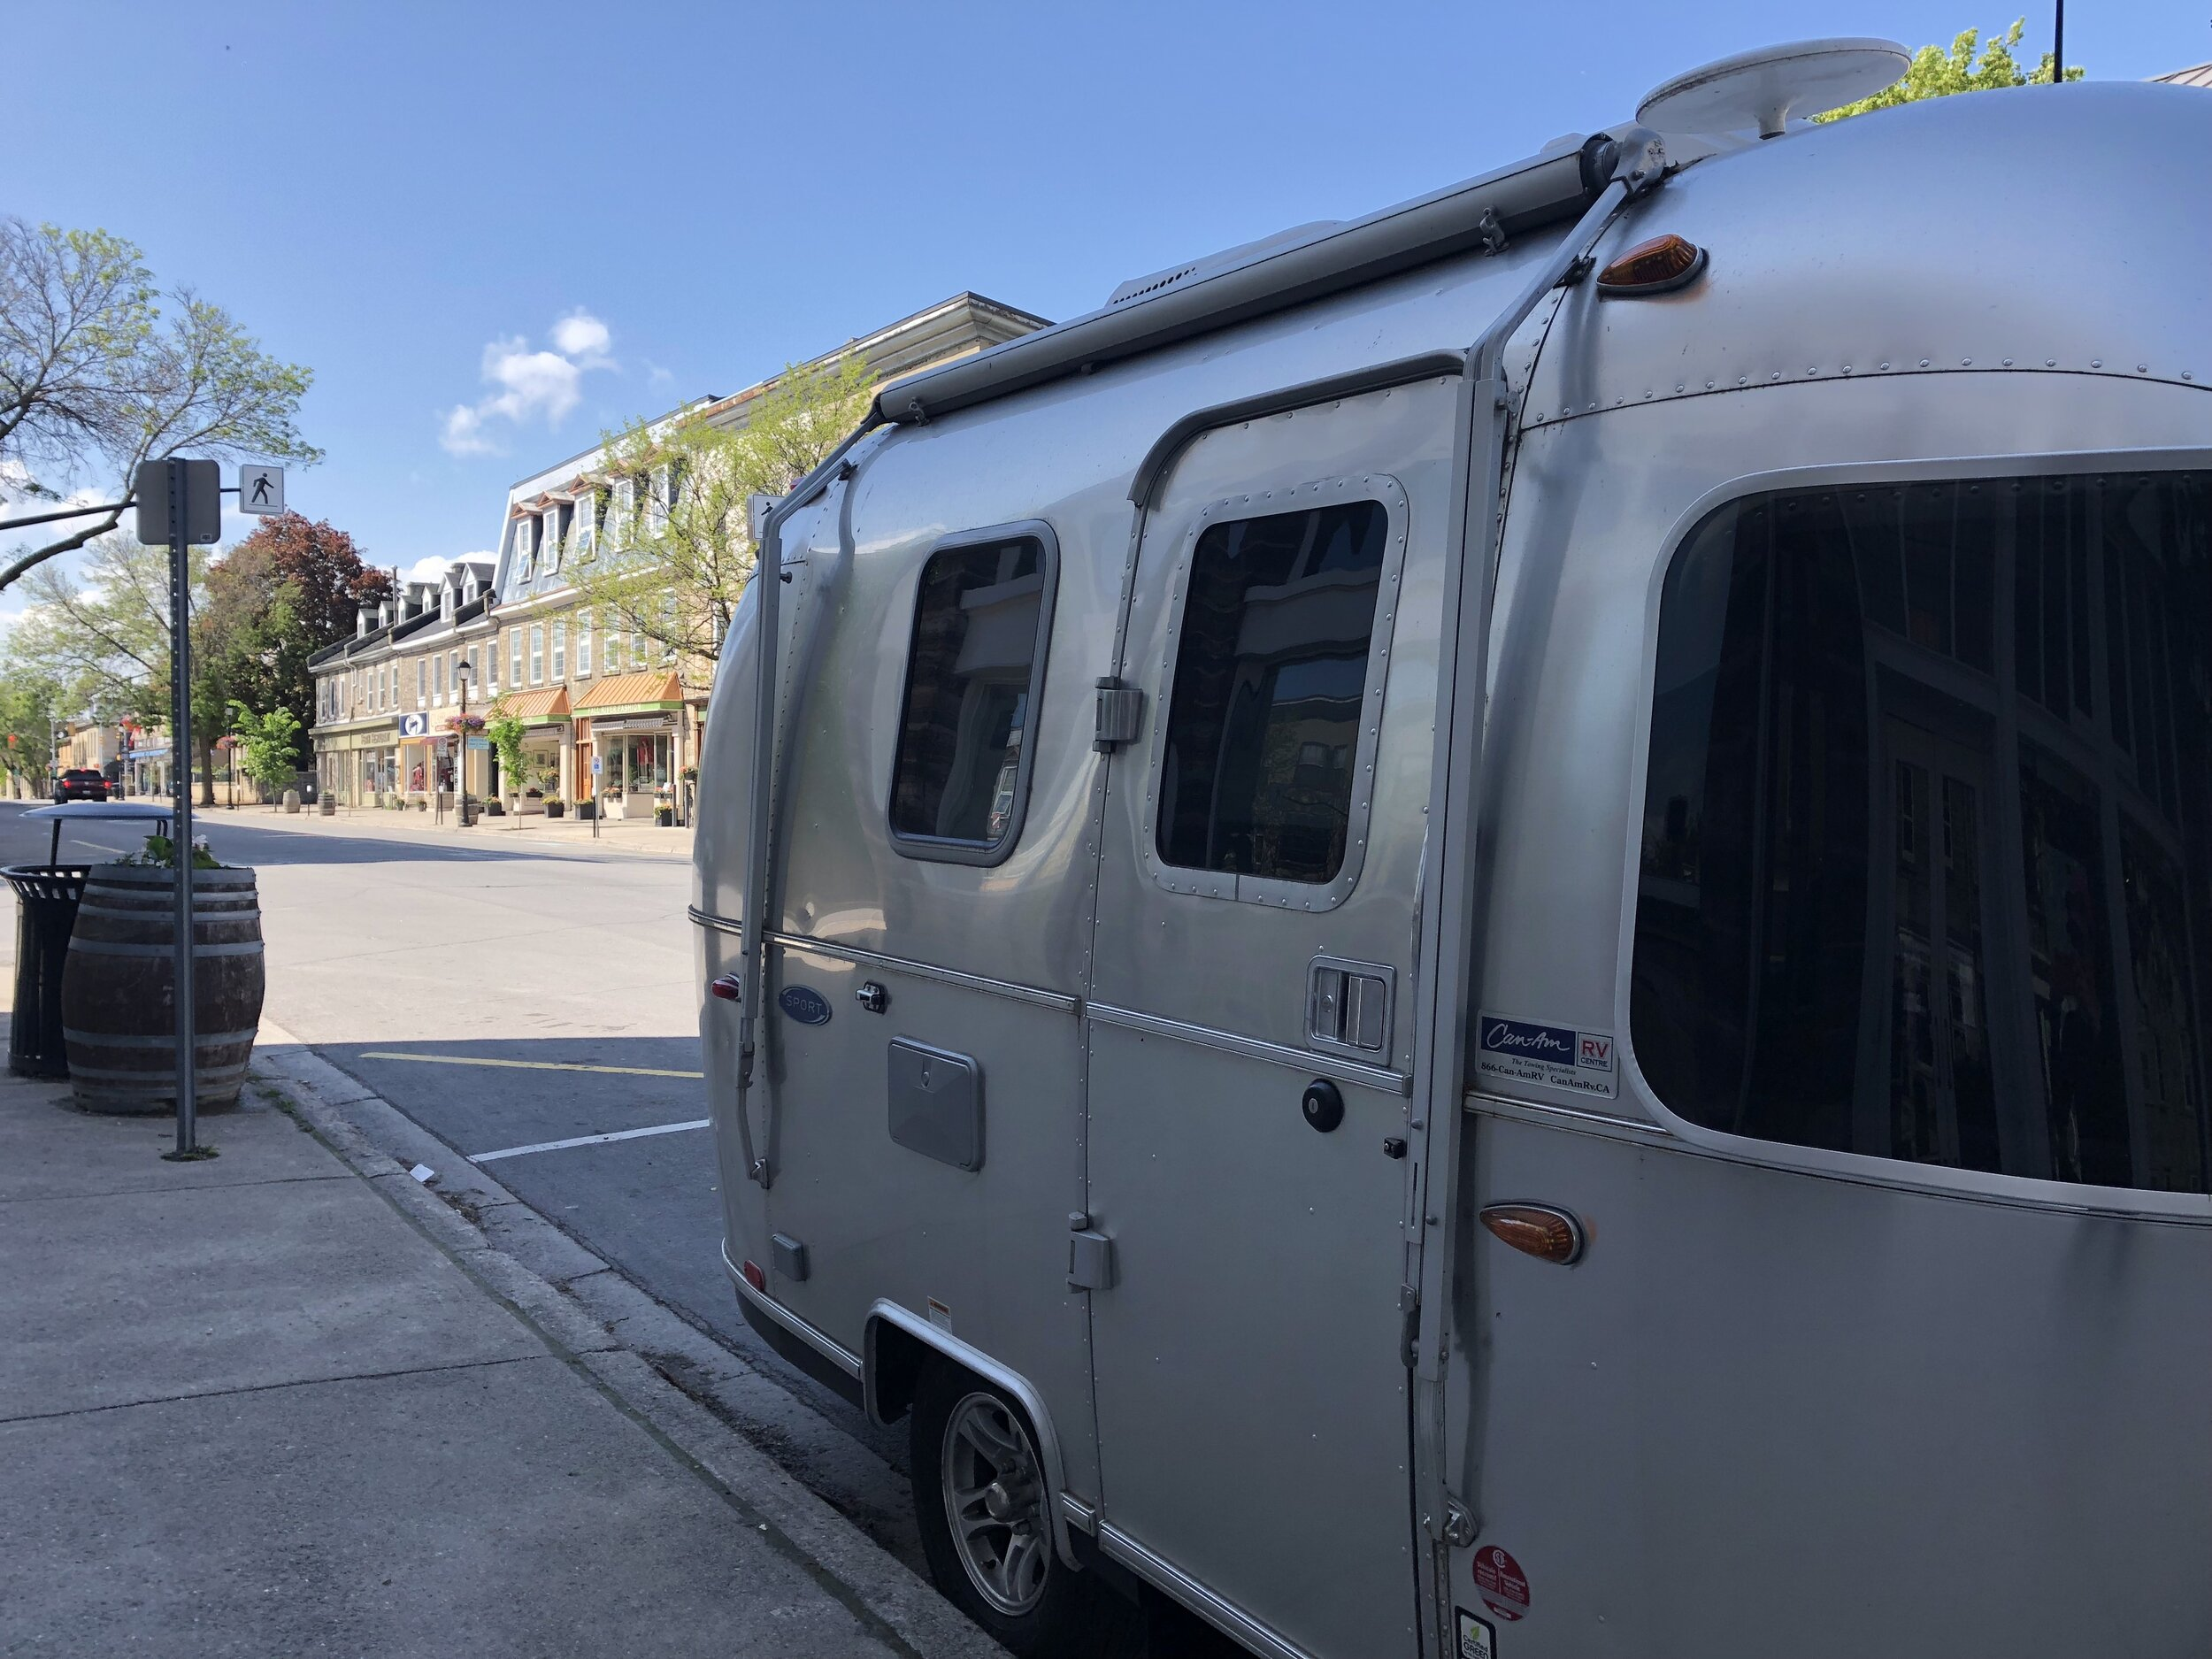 Parked on Perth's Gore Street!